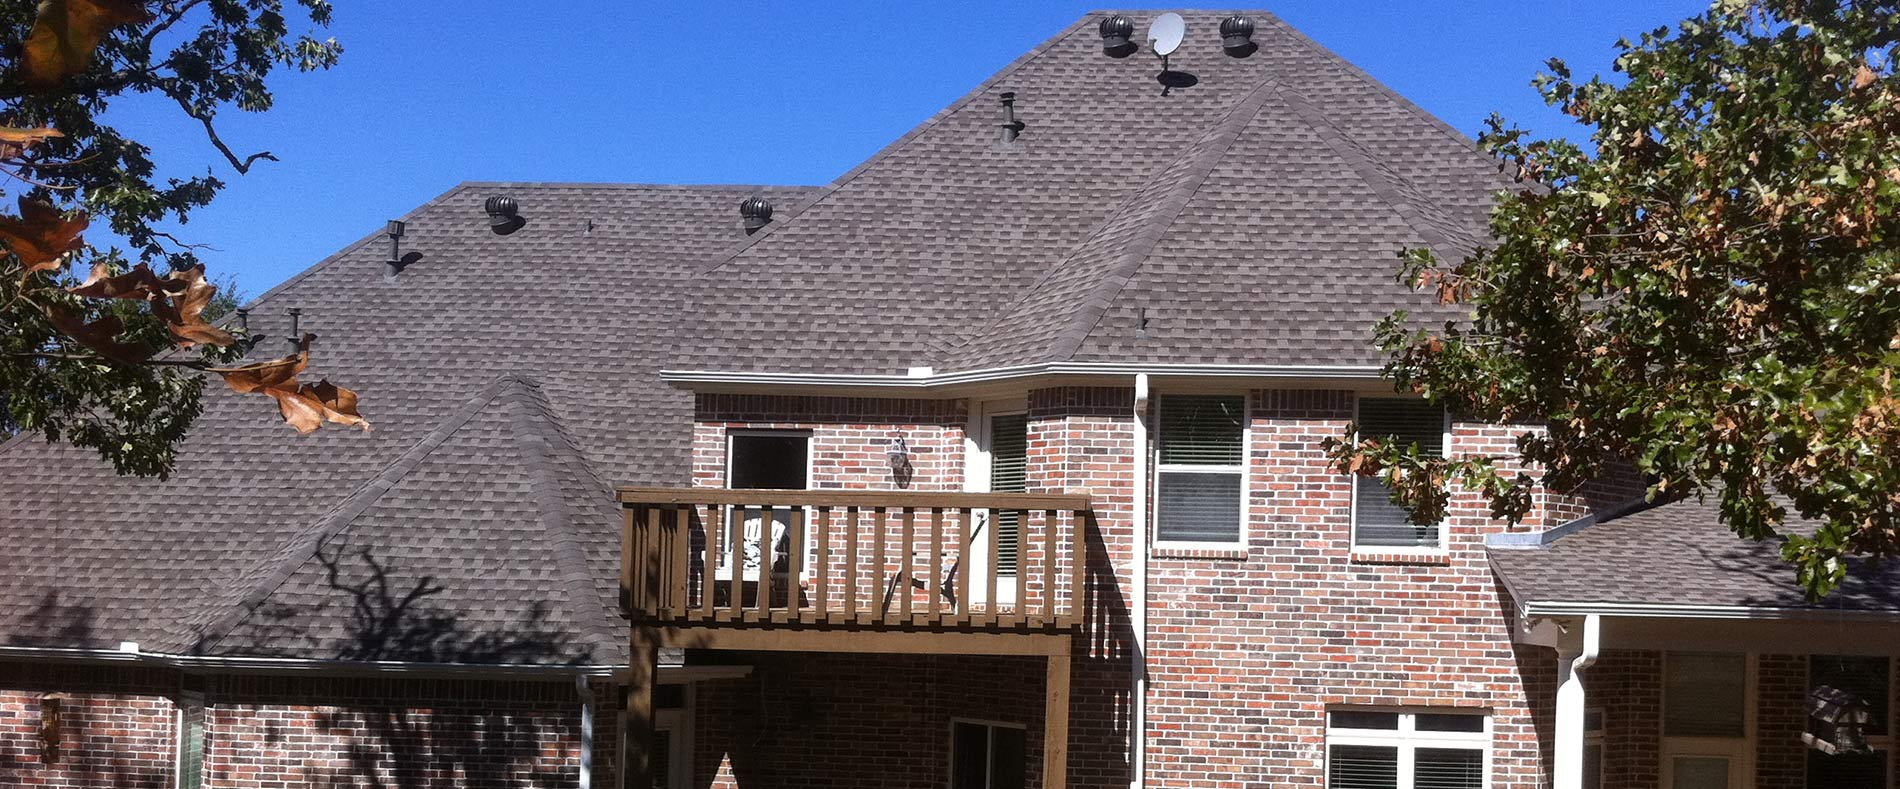 Residential Roofing<br/>Plano, TX & The Woodlands, TX